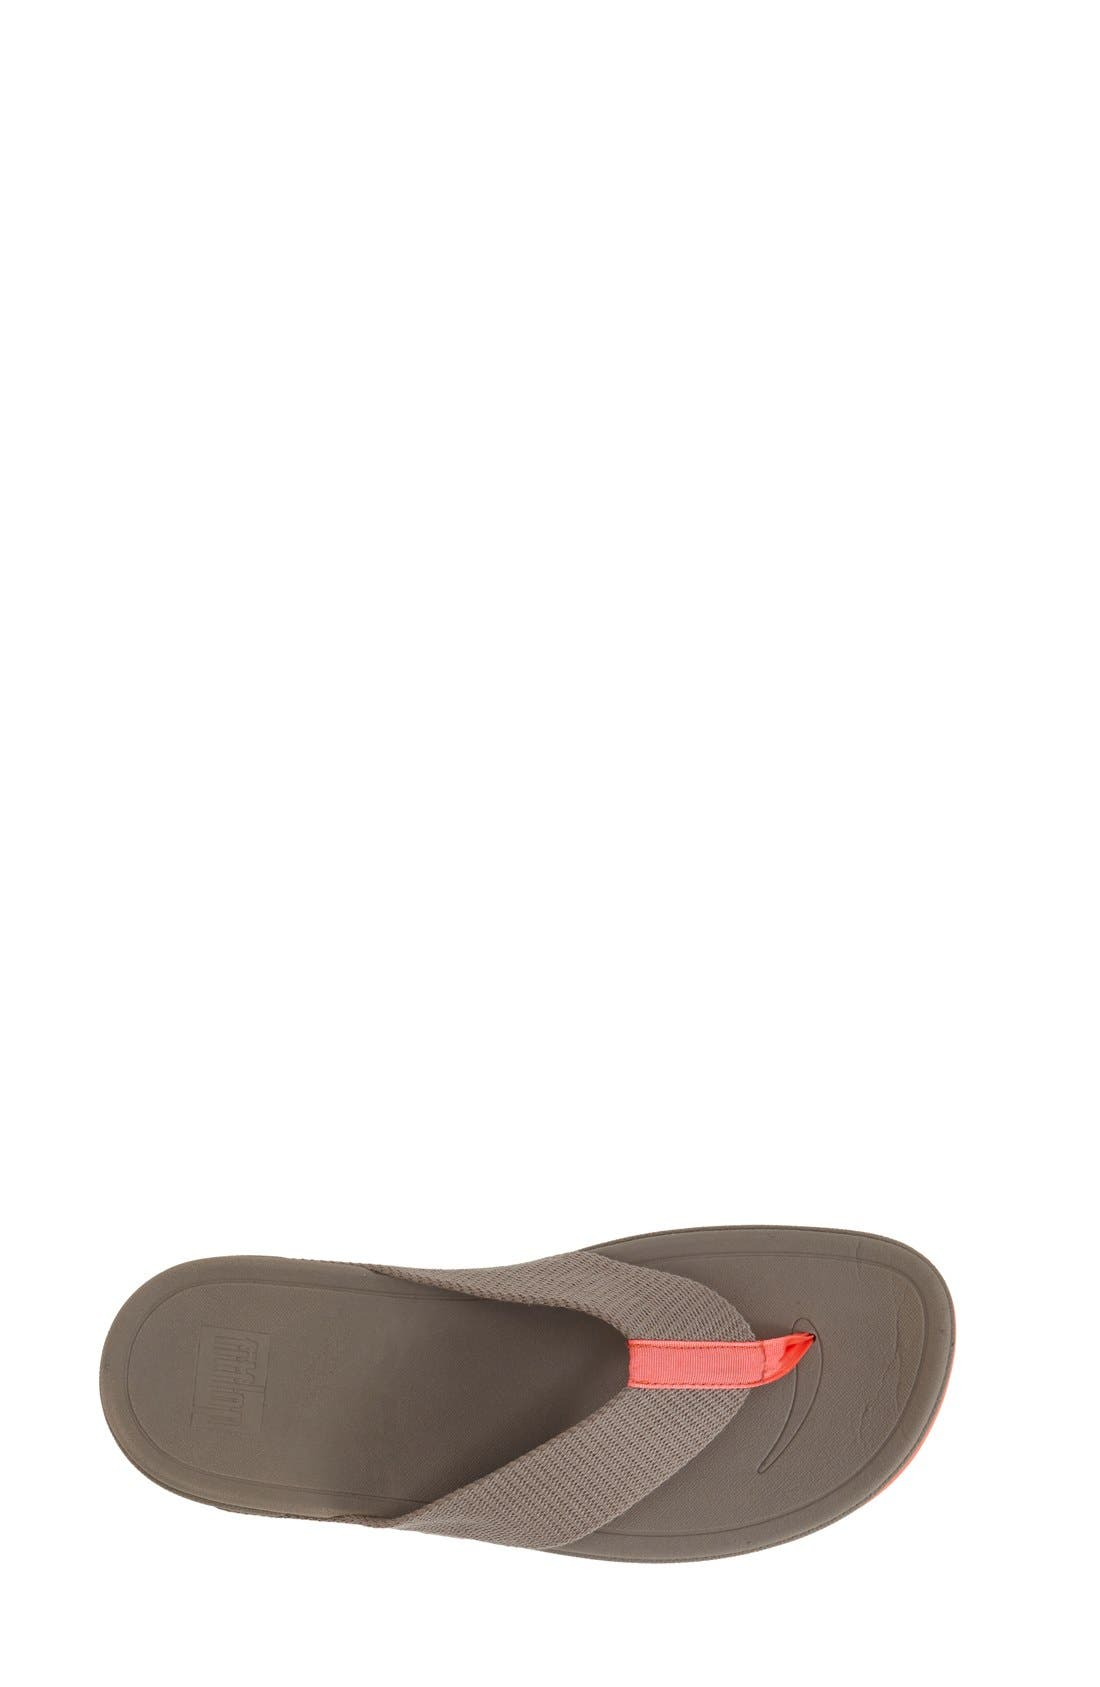 'Surfa' Thong Sandal,                             Alternate thumbnail 21, color,